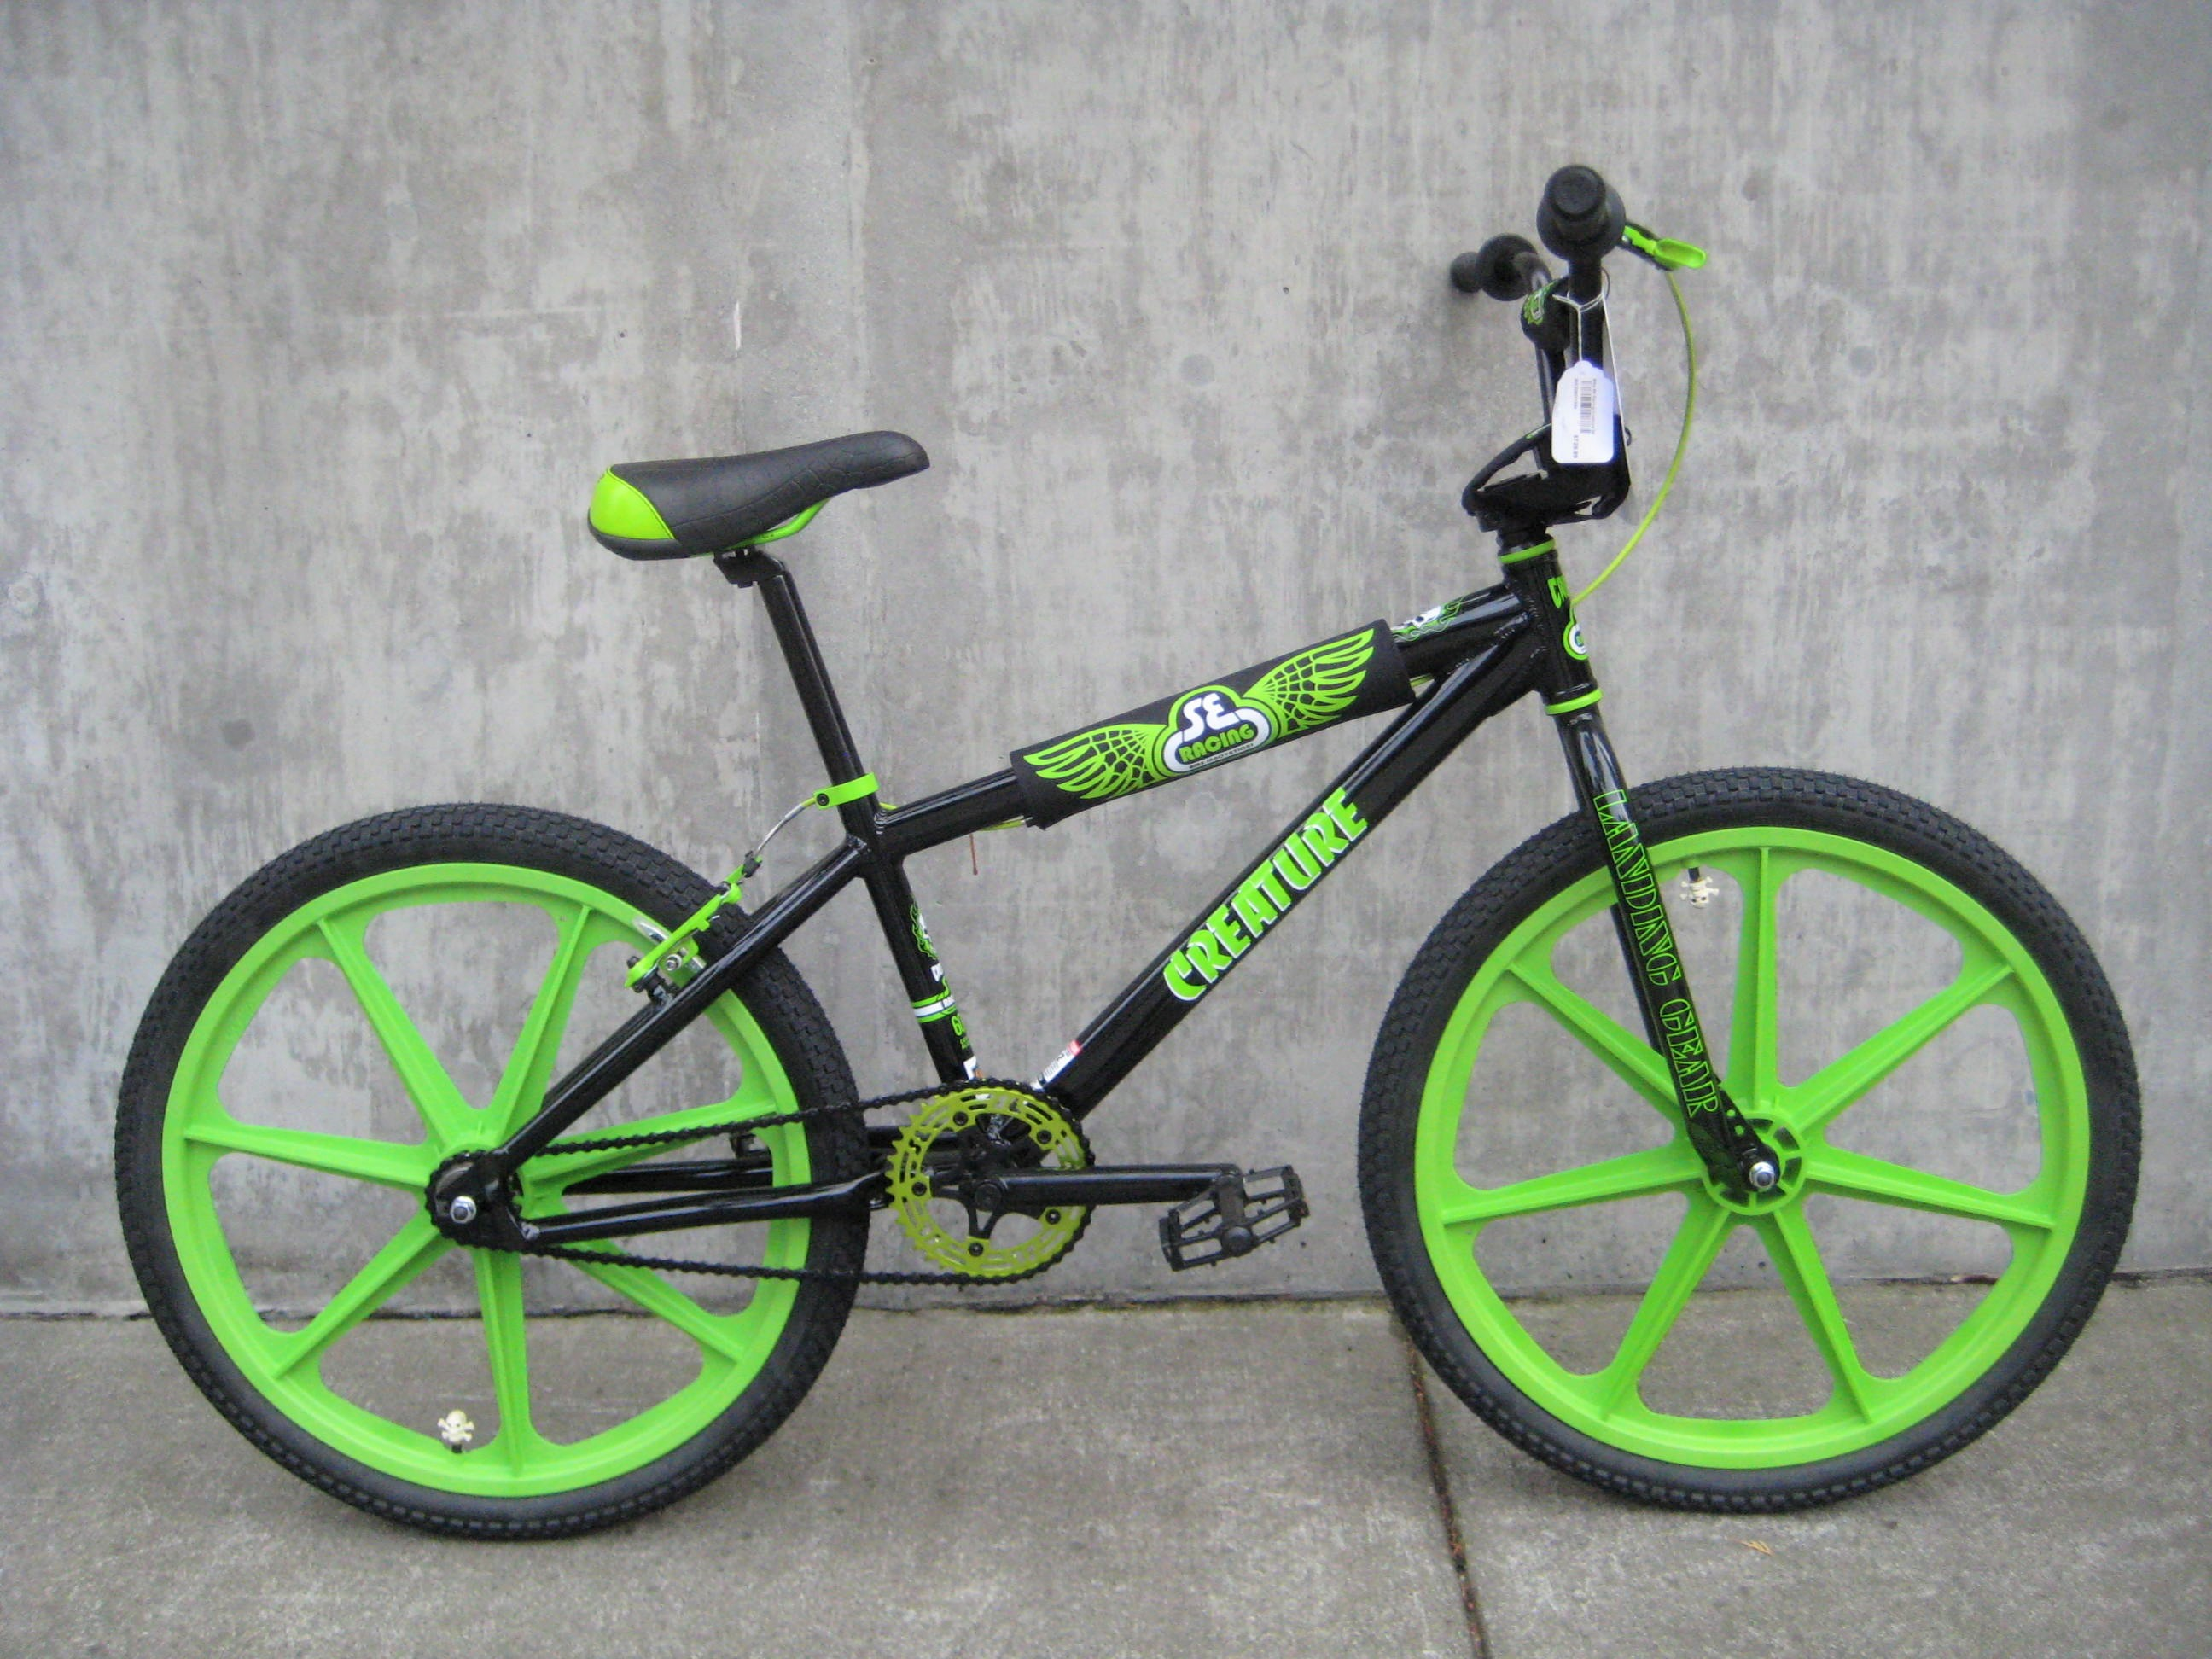 Olympic cycle port orchard - A Floval Flyer In Creature Skateboard Colors